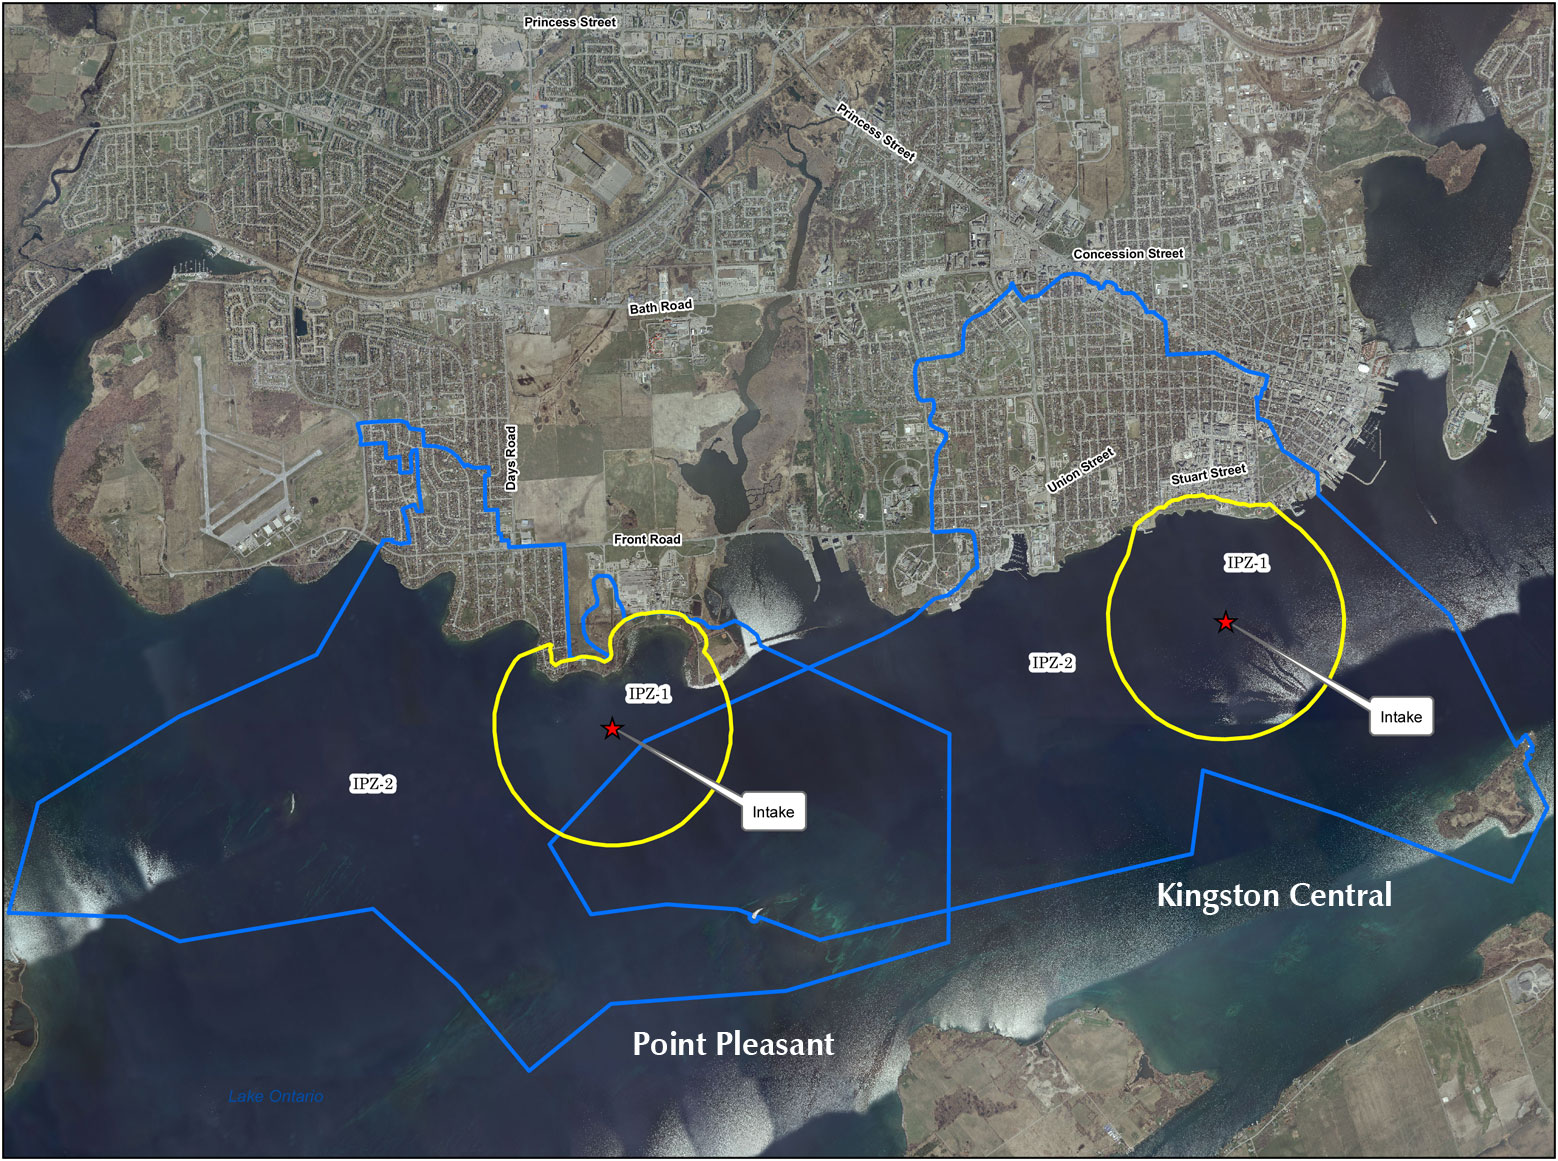 Point Pleasant and Kingston Central Intake Protection Zones